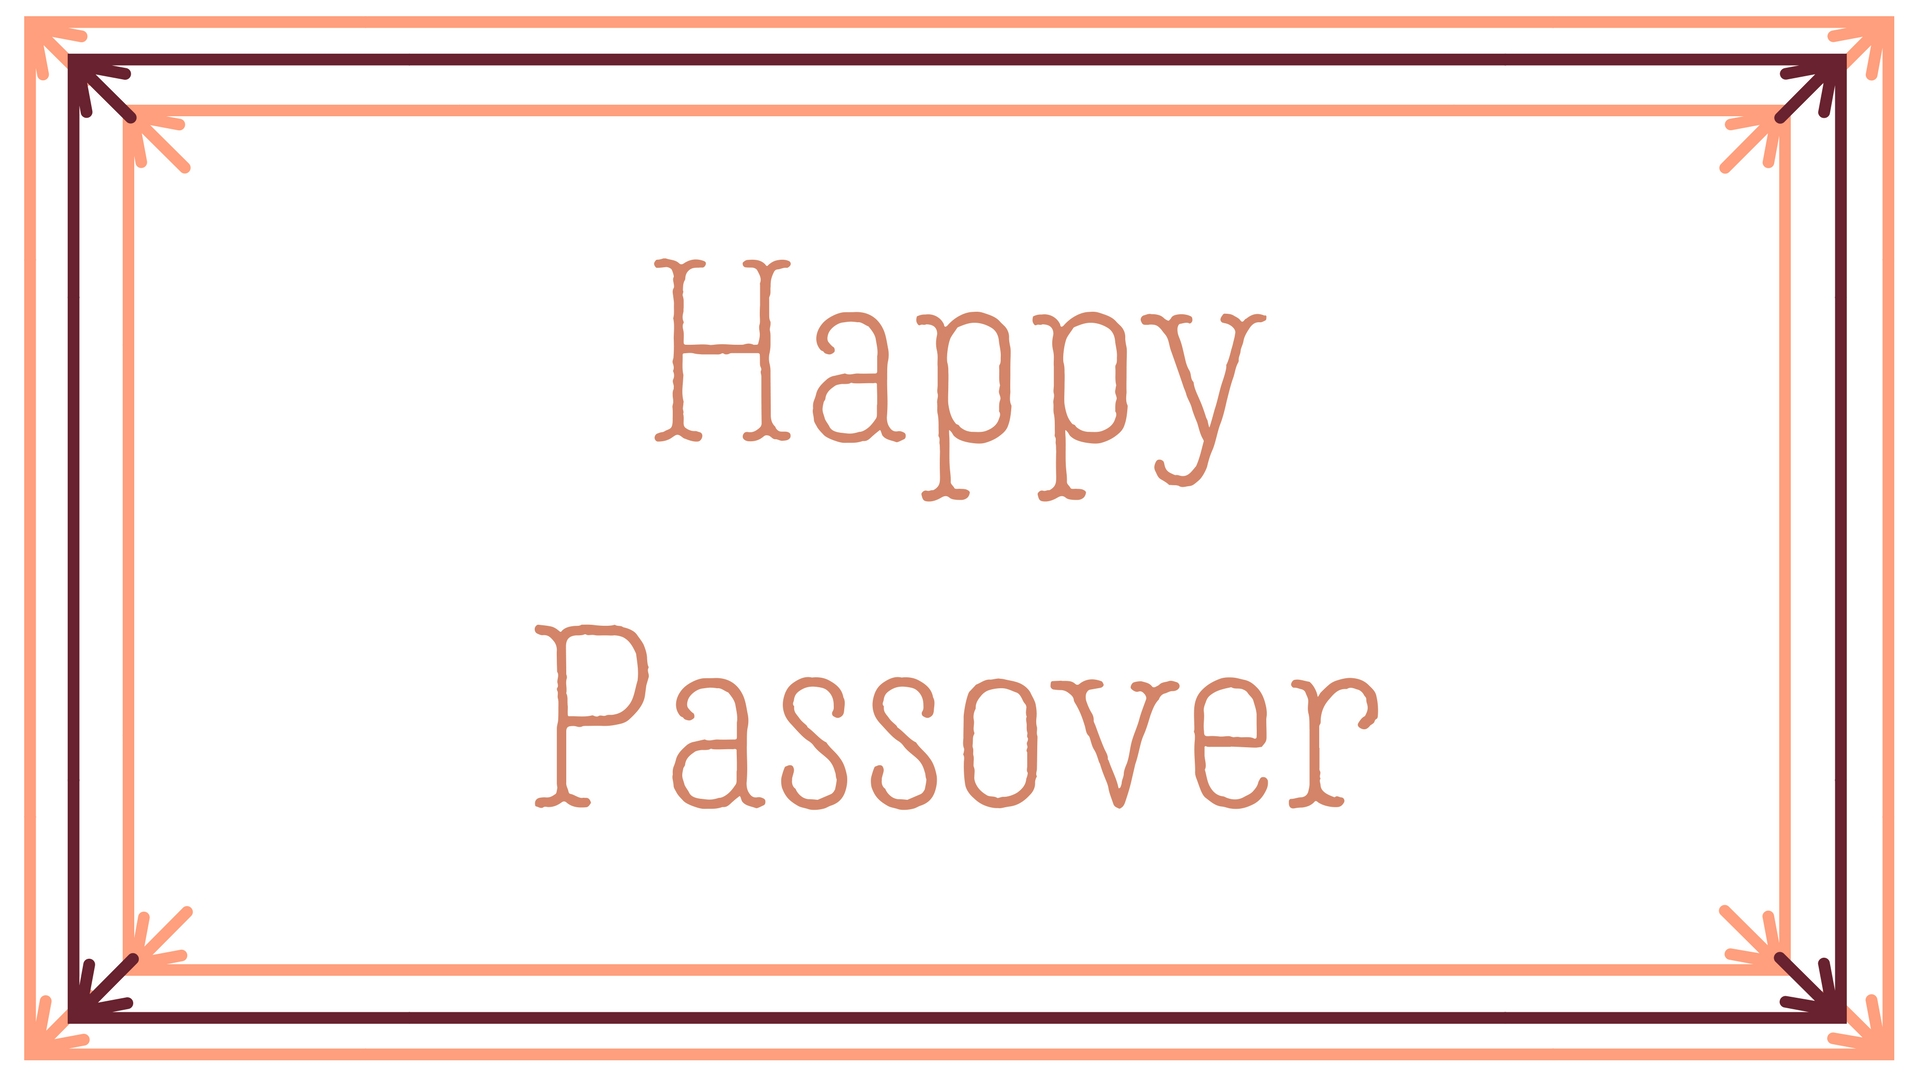 Happy Passover Rectangle Frame Greeting Card Postcard 12